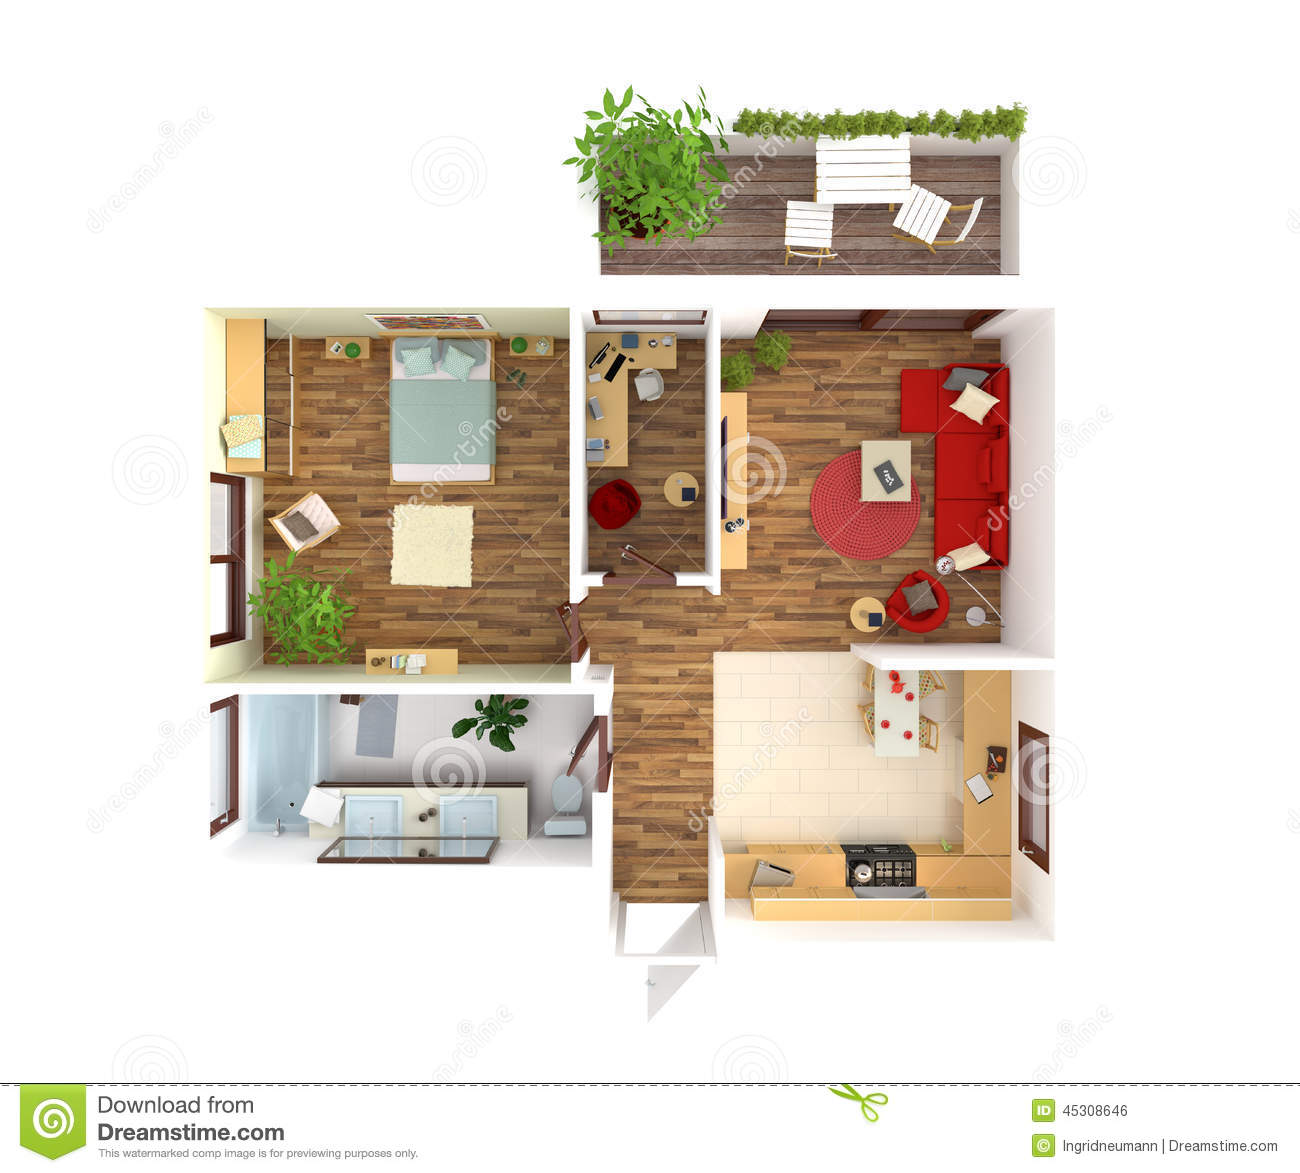 House plan top view interior design stock illustration for Home plans with interior photos